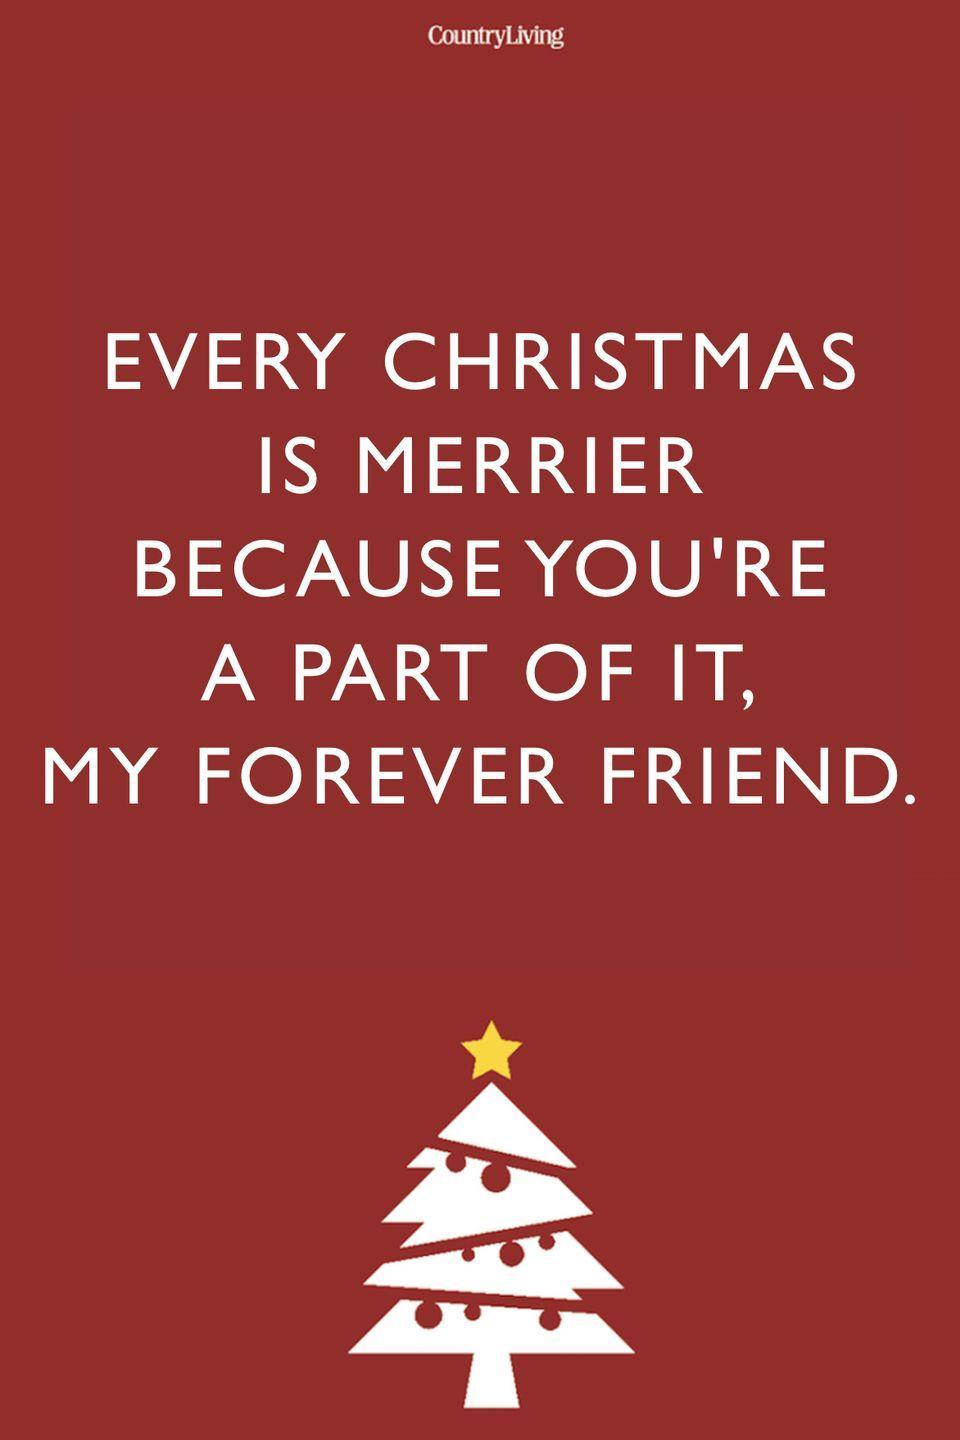 <p>Every Christmas is merrier because you're a part of it, my forever friend.</p>